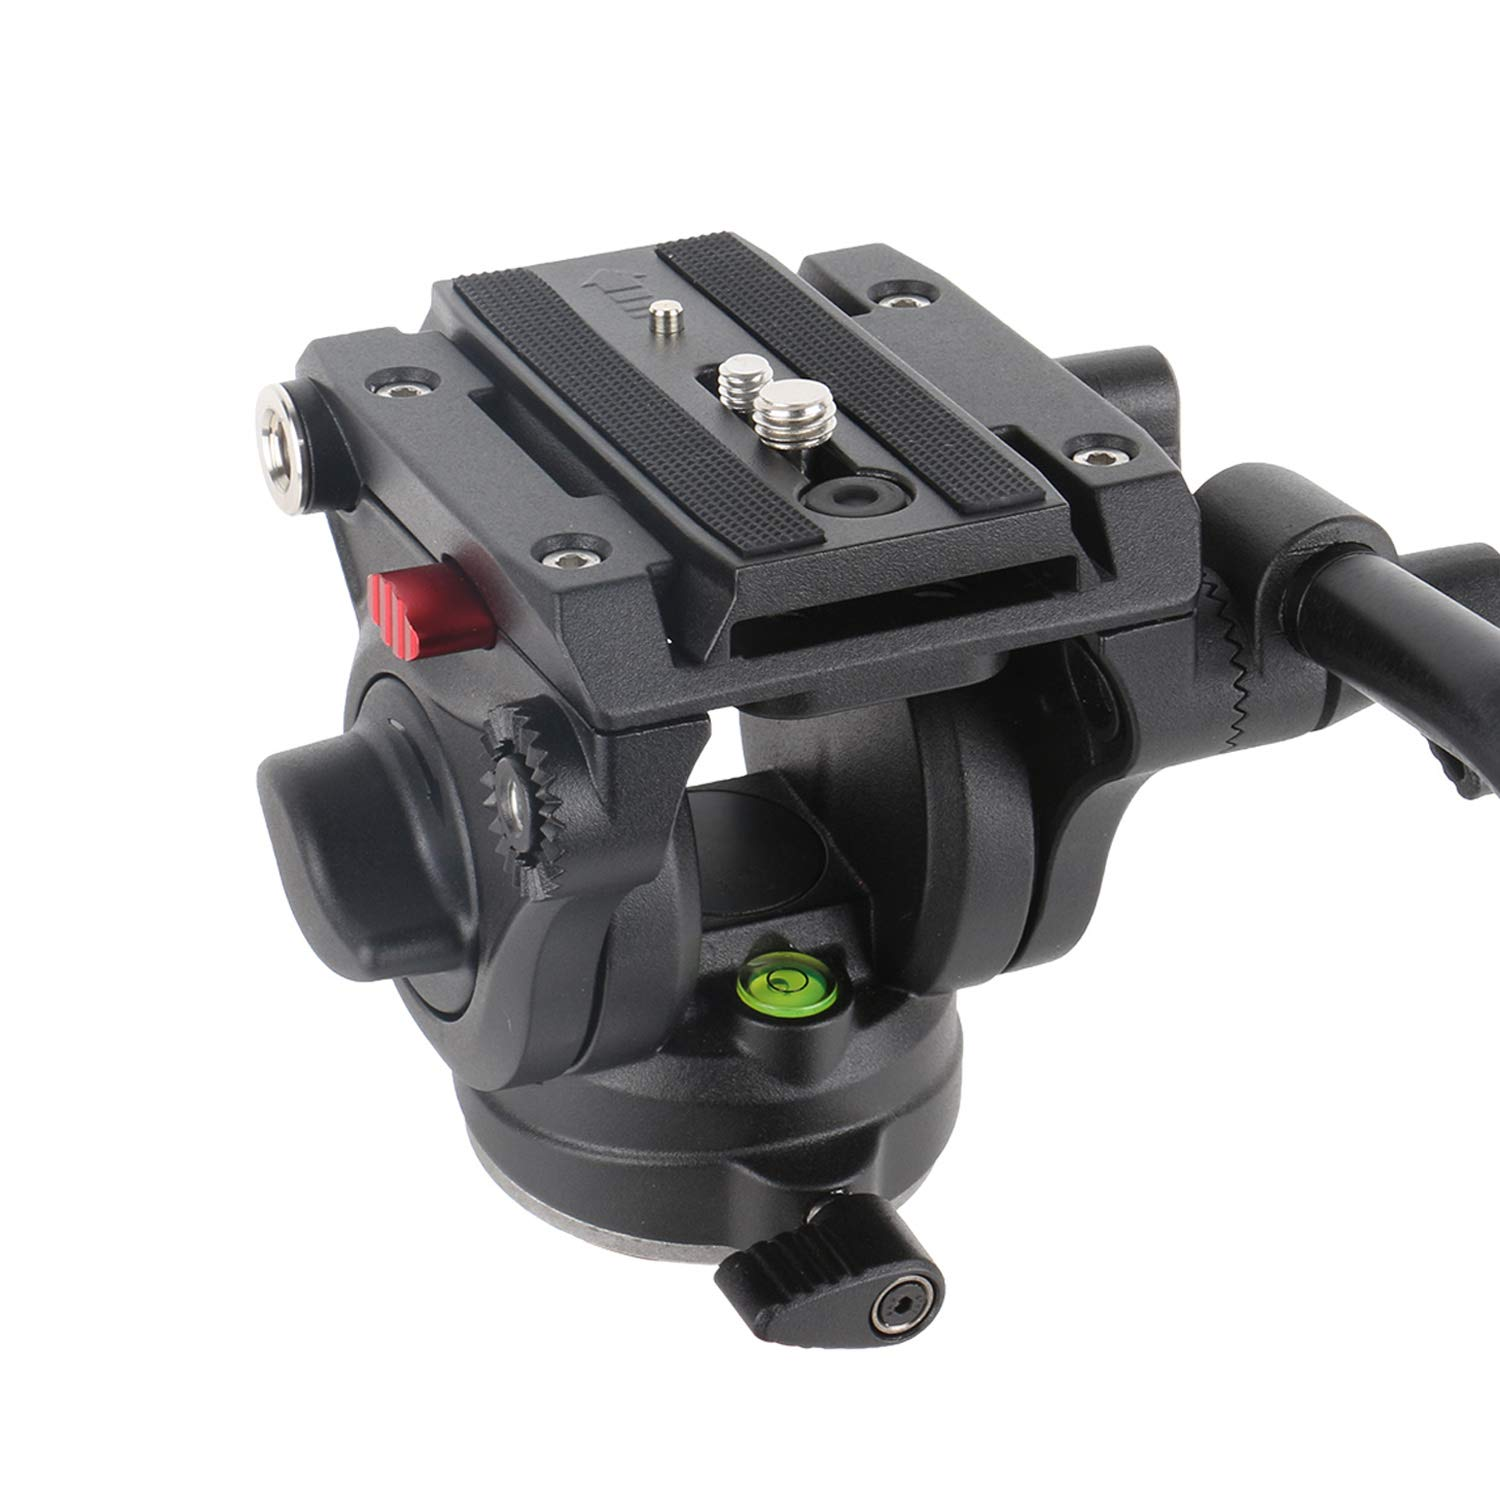 Avella V501 Video Camera Tripod Fluid Drag Pan Head for Canon Nikon Sony Olympus Panasonic DSLR Camera,Tripods with 3/8'' and 1/4'' Mounting Screw by AVELLA